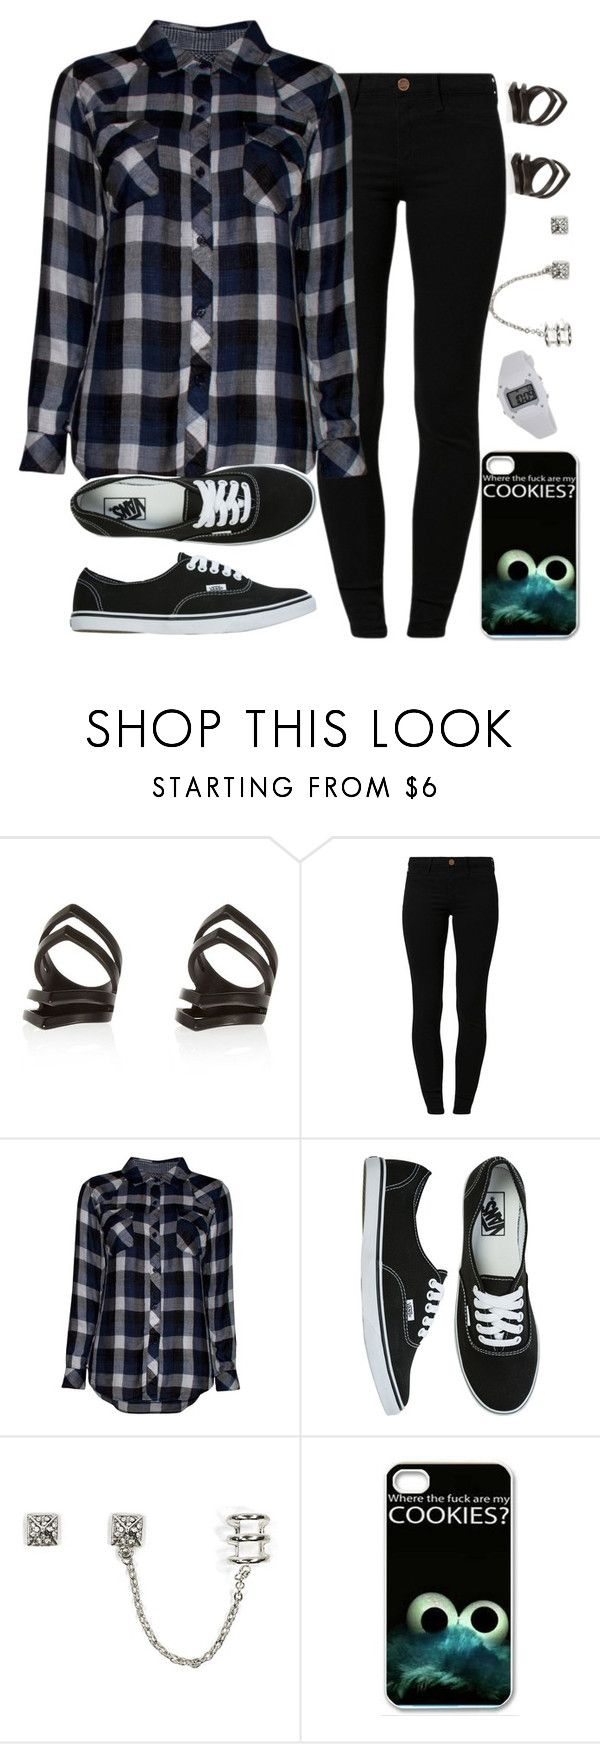 """""""Forget the fear it's just a crutch that tries to hold you back and turn your dreams to dust all you need to do is just trust"""" by rocketsheep ❤ liked on Polyvore featuring River Island, Rails, Vans, Freestyle, vans, lyrics, cookiemonster and fireflight"""